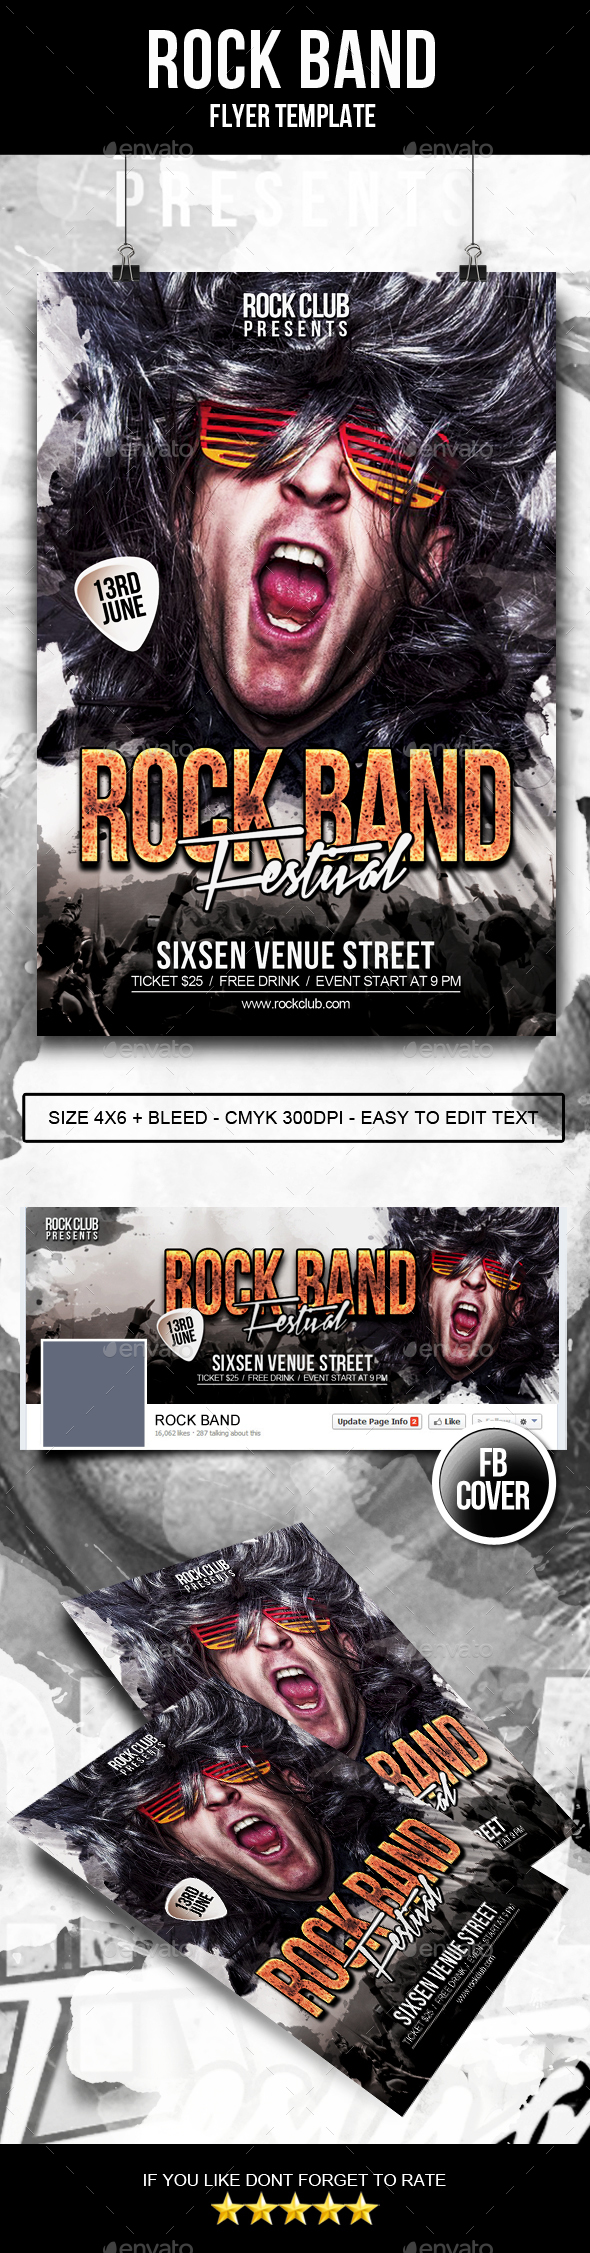 Rock Band Flyer - Clubs & Parties Events